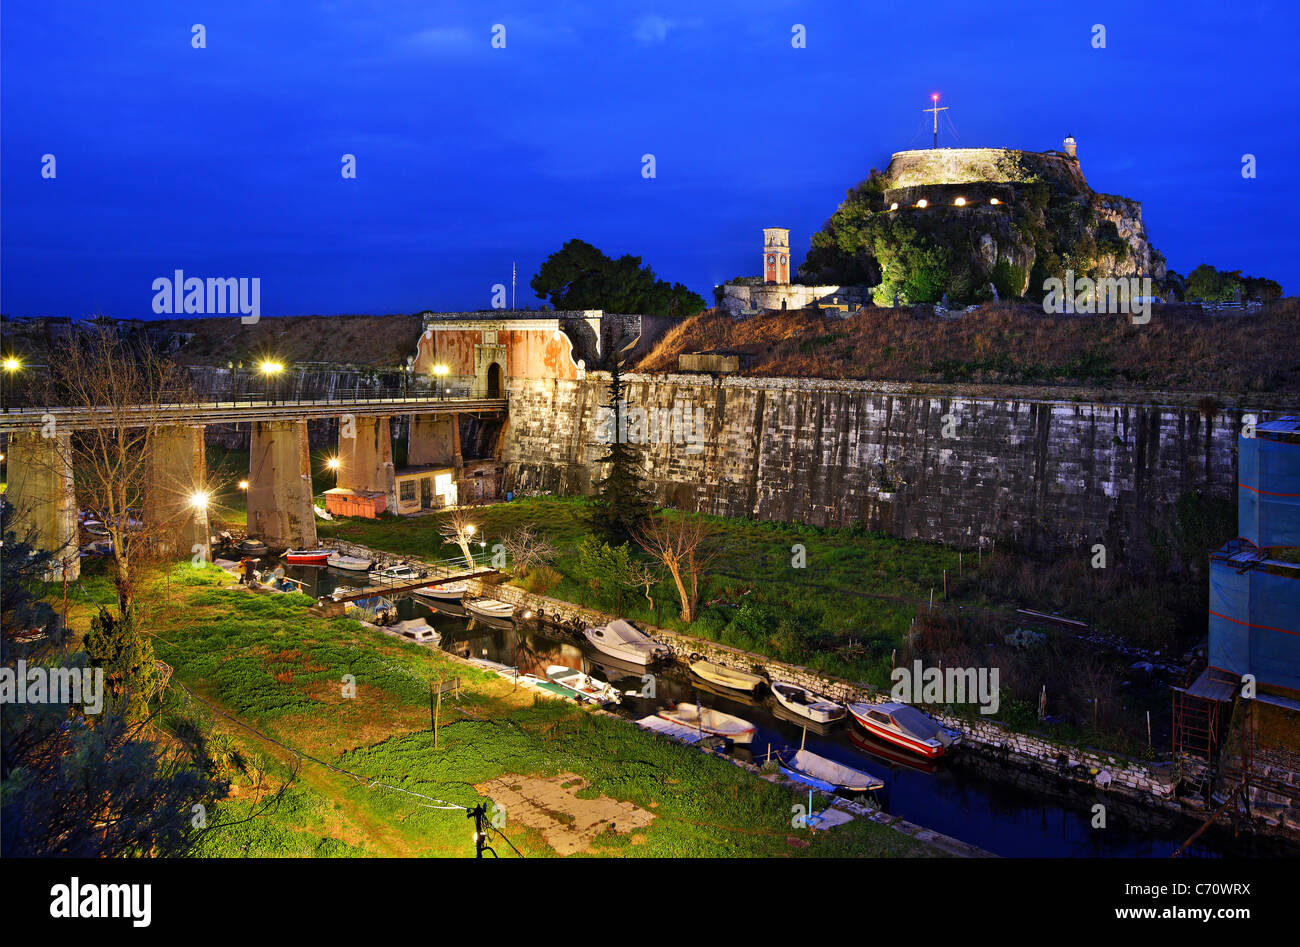 Greece, Corfu (or 'Kerkyra') island. The Old Fort and the canal called 'Contrafossa', that separates - Stock Image